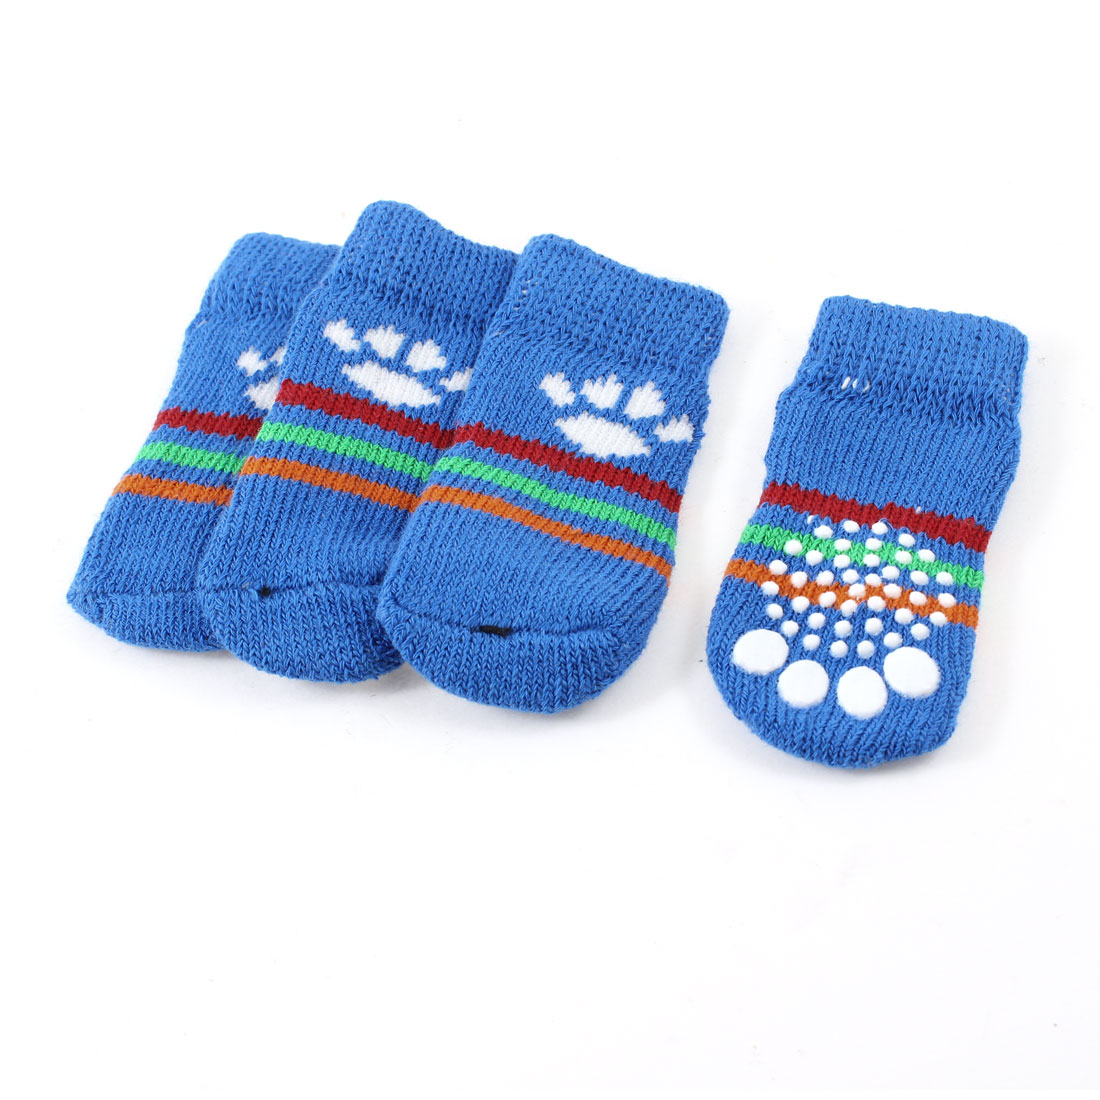 2 Pairs Blue Hand Knit Paw Stripe Print Elastic Nonskid Pet Dog Doggy Socks